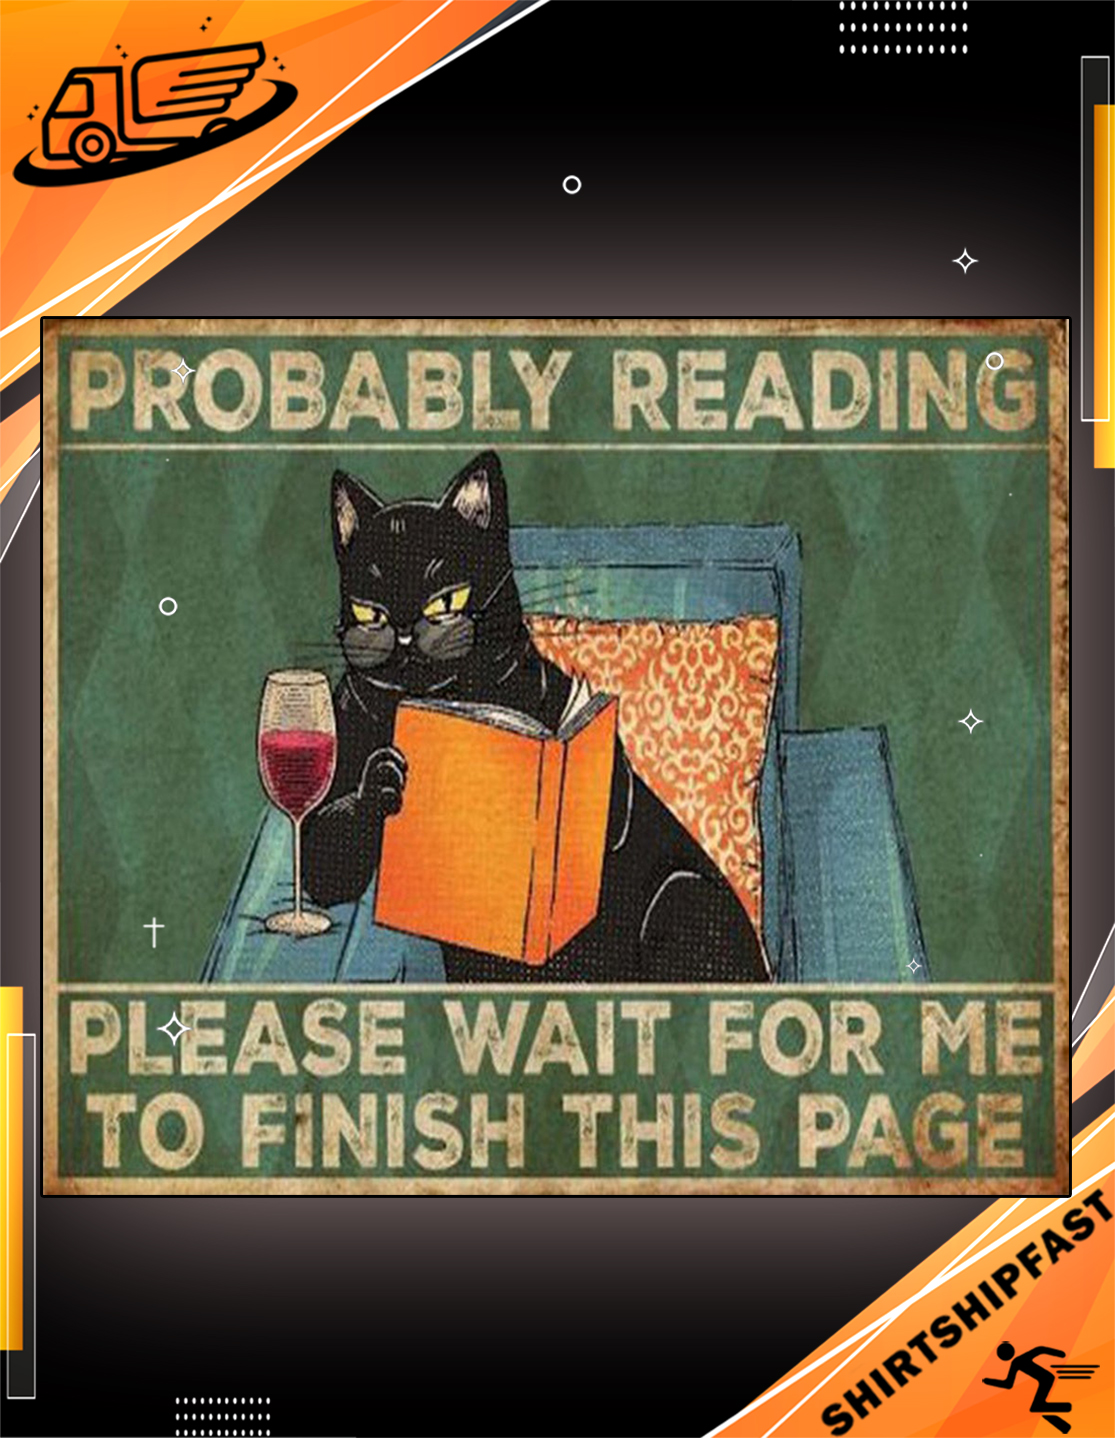 Cat reading book Probably reading please wait for me to finish this page doormat - Picture 3